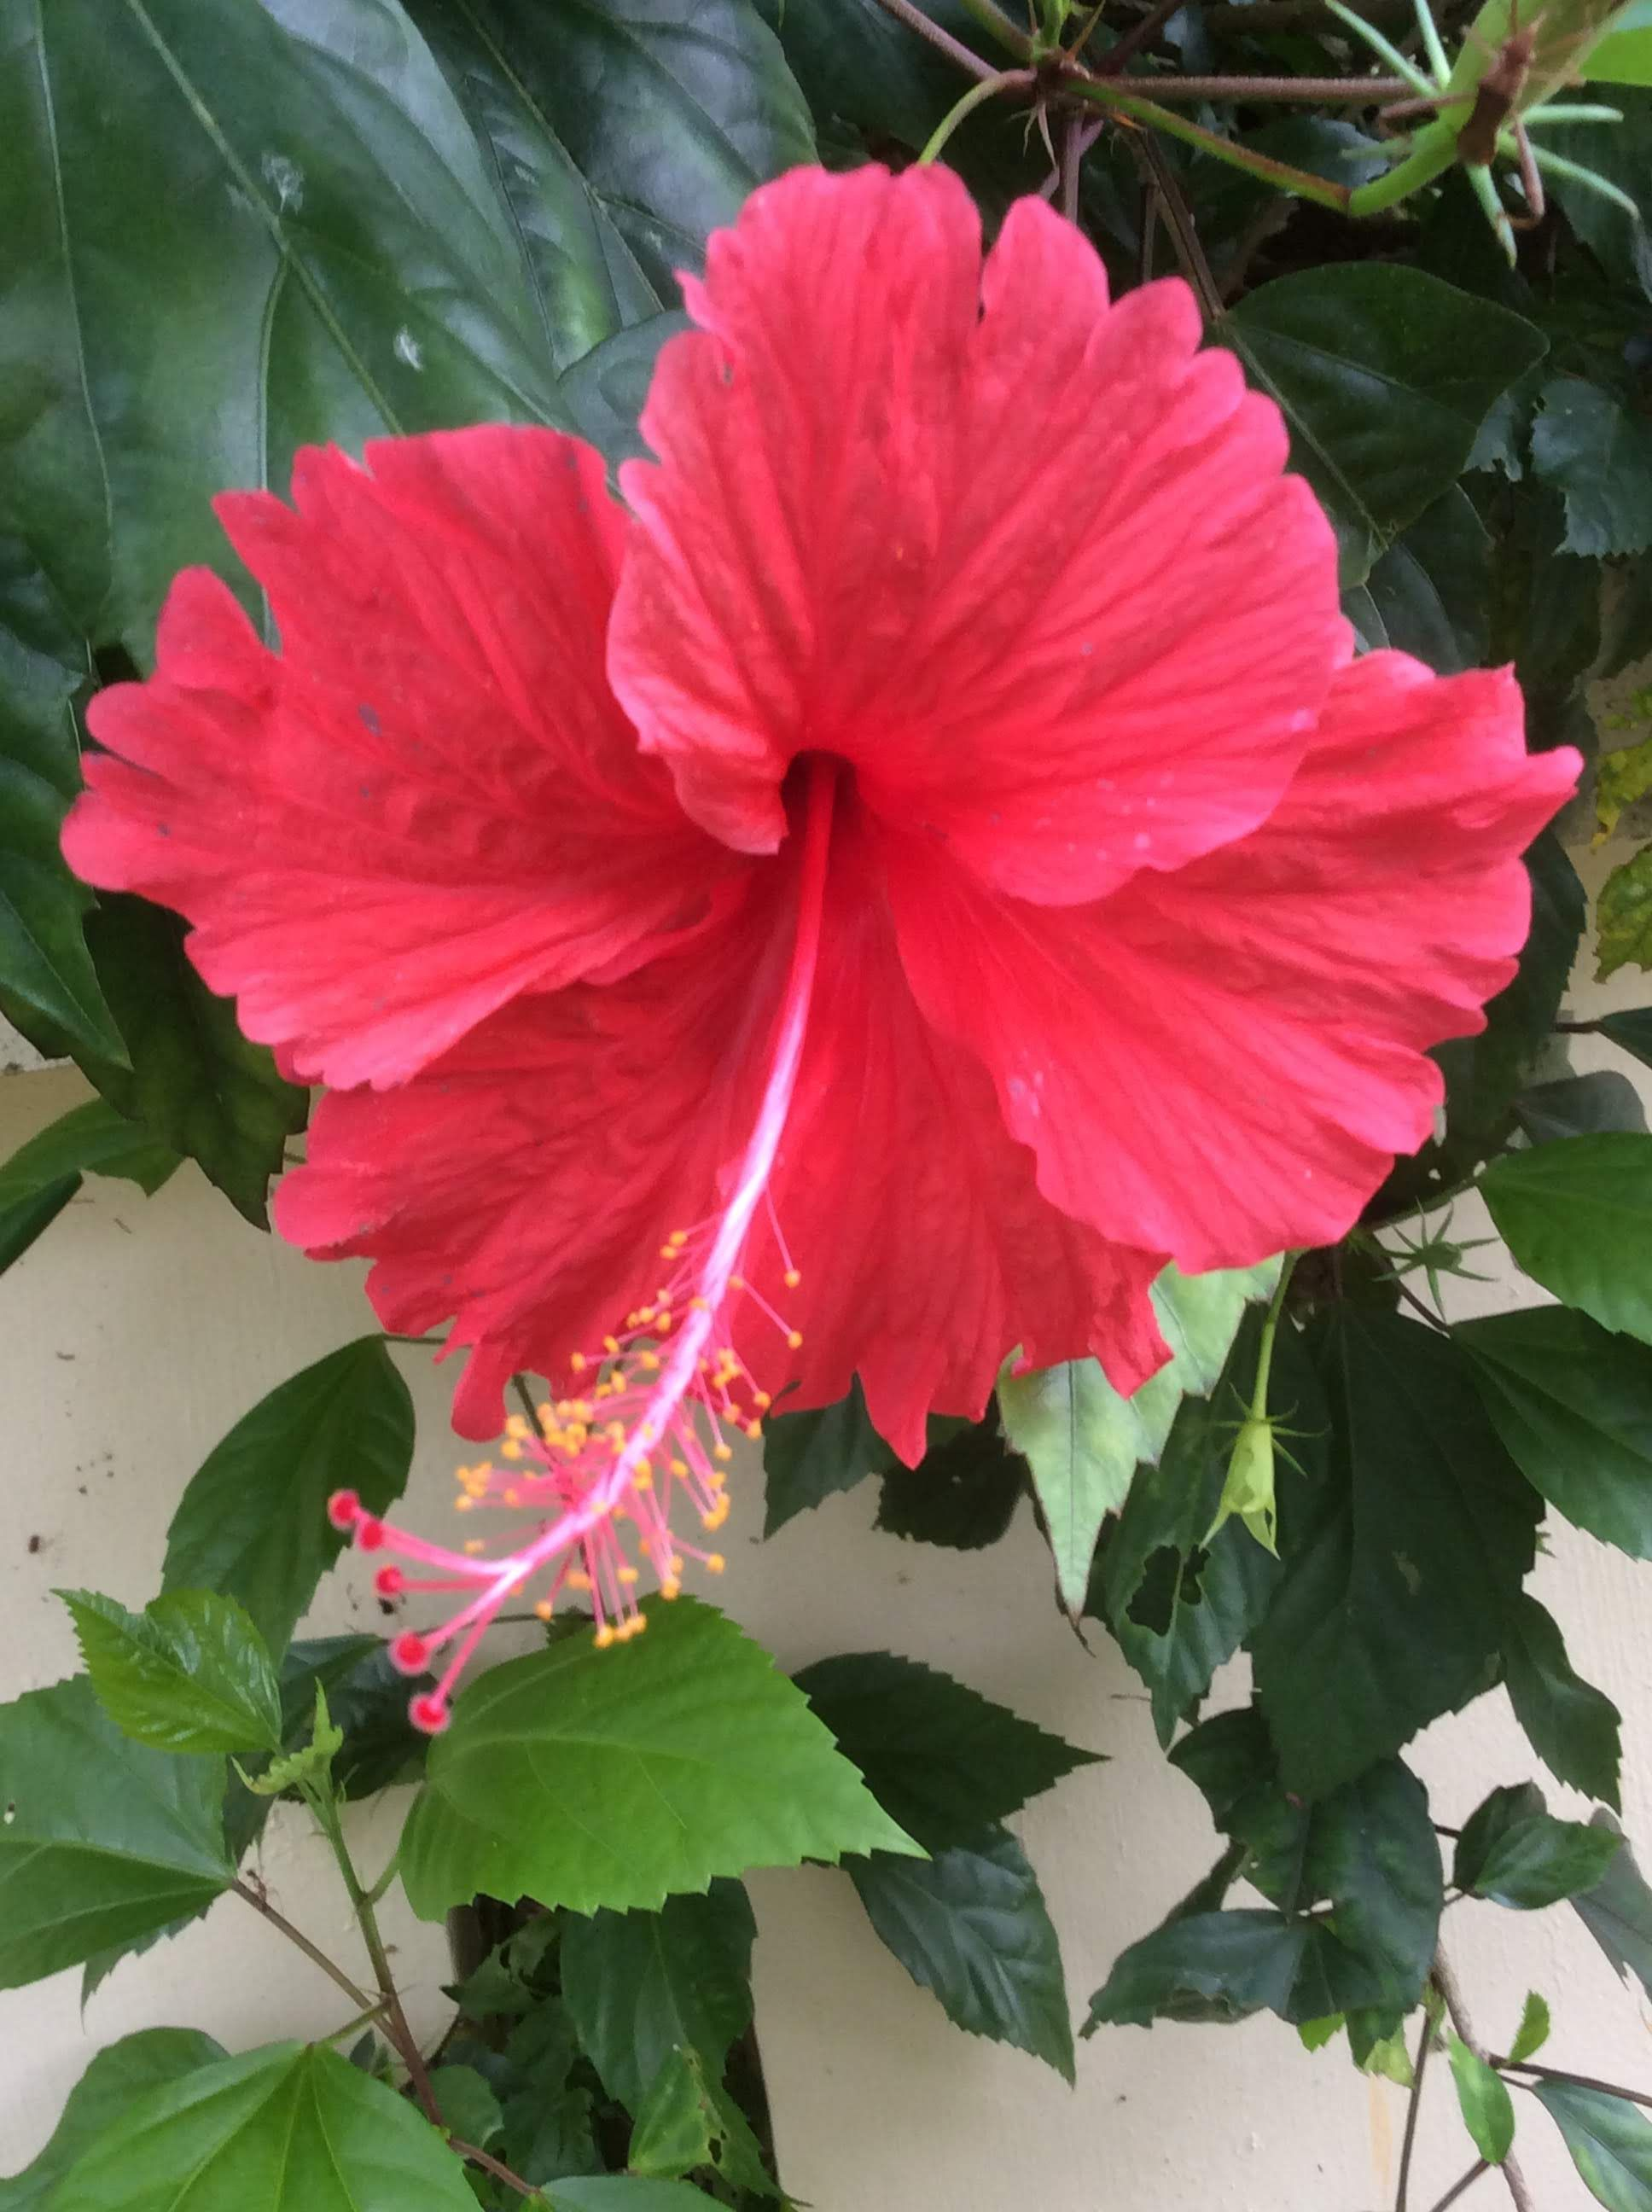 Hibiscus Flower We Can Use Flowers And Leaves Of This Plant For Hair Growth Treating Dandruff Etc Hibiscus Flowers Flowers Beautiful Flowers